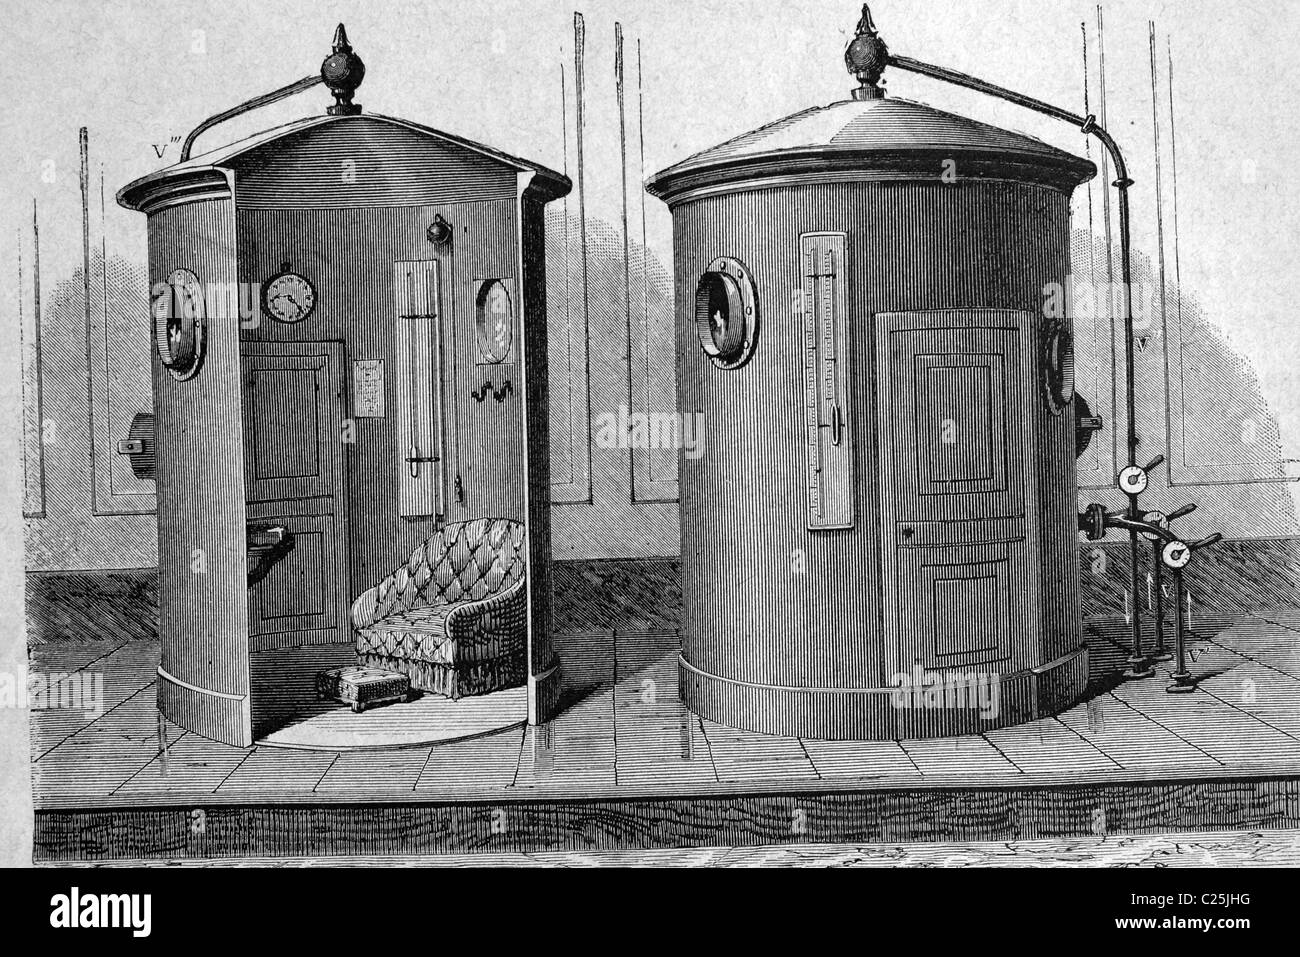 Apparatus for the inhalation of compressed air, historical illustration, 1877 - Stock Image